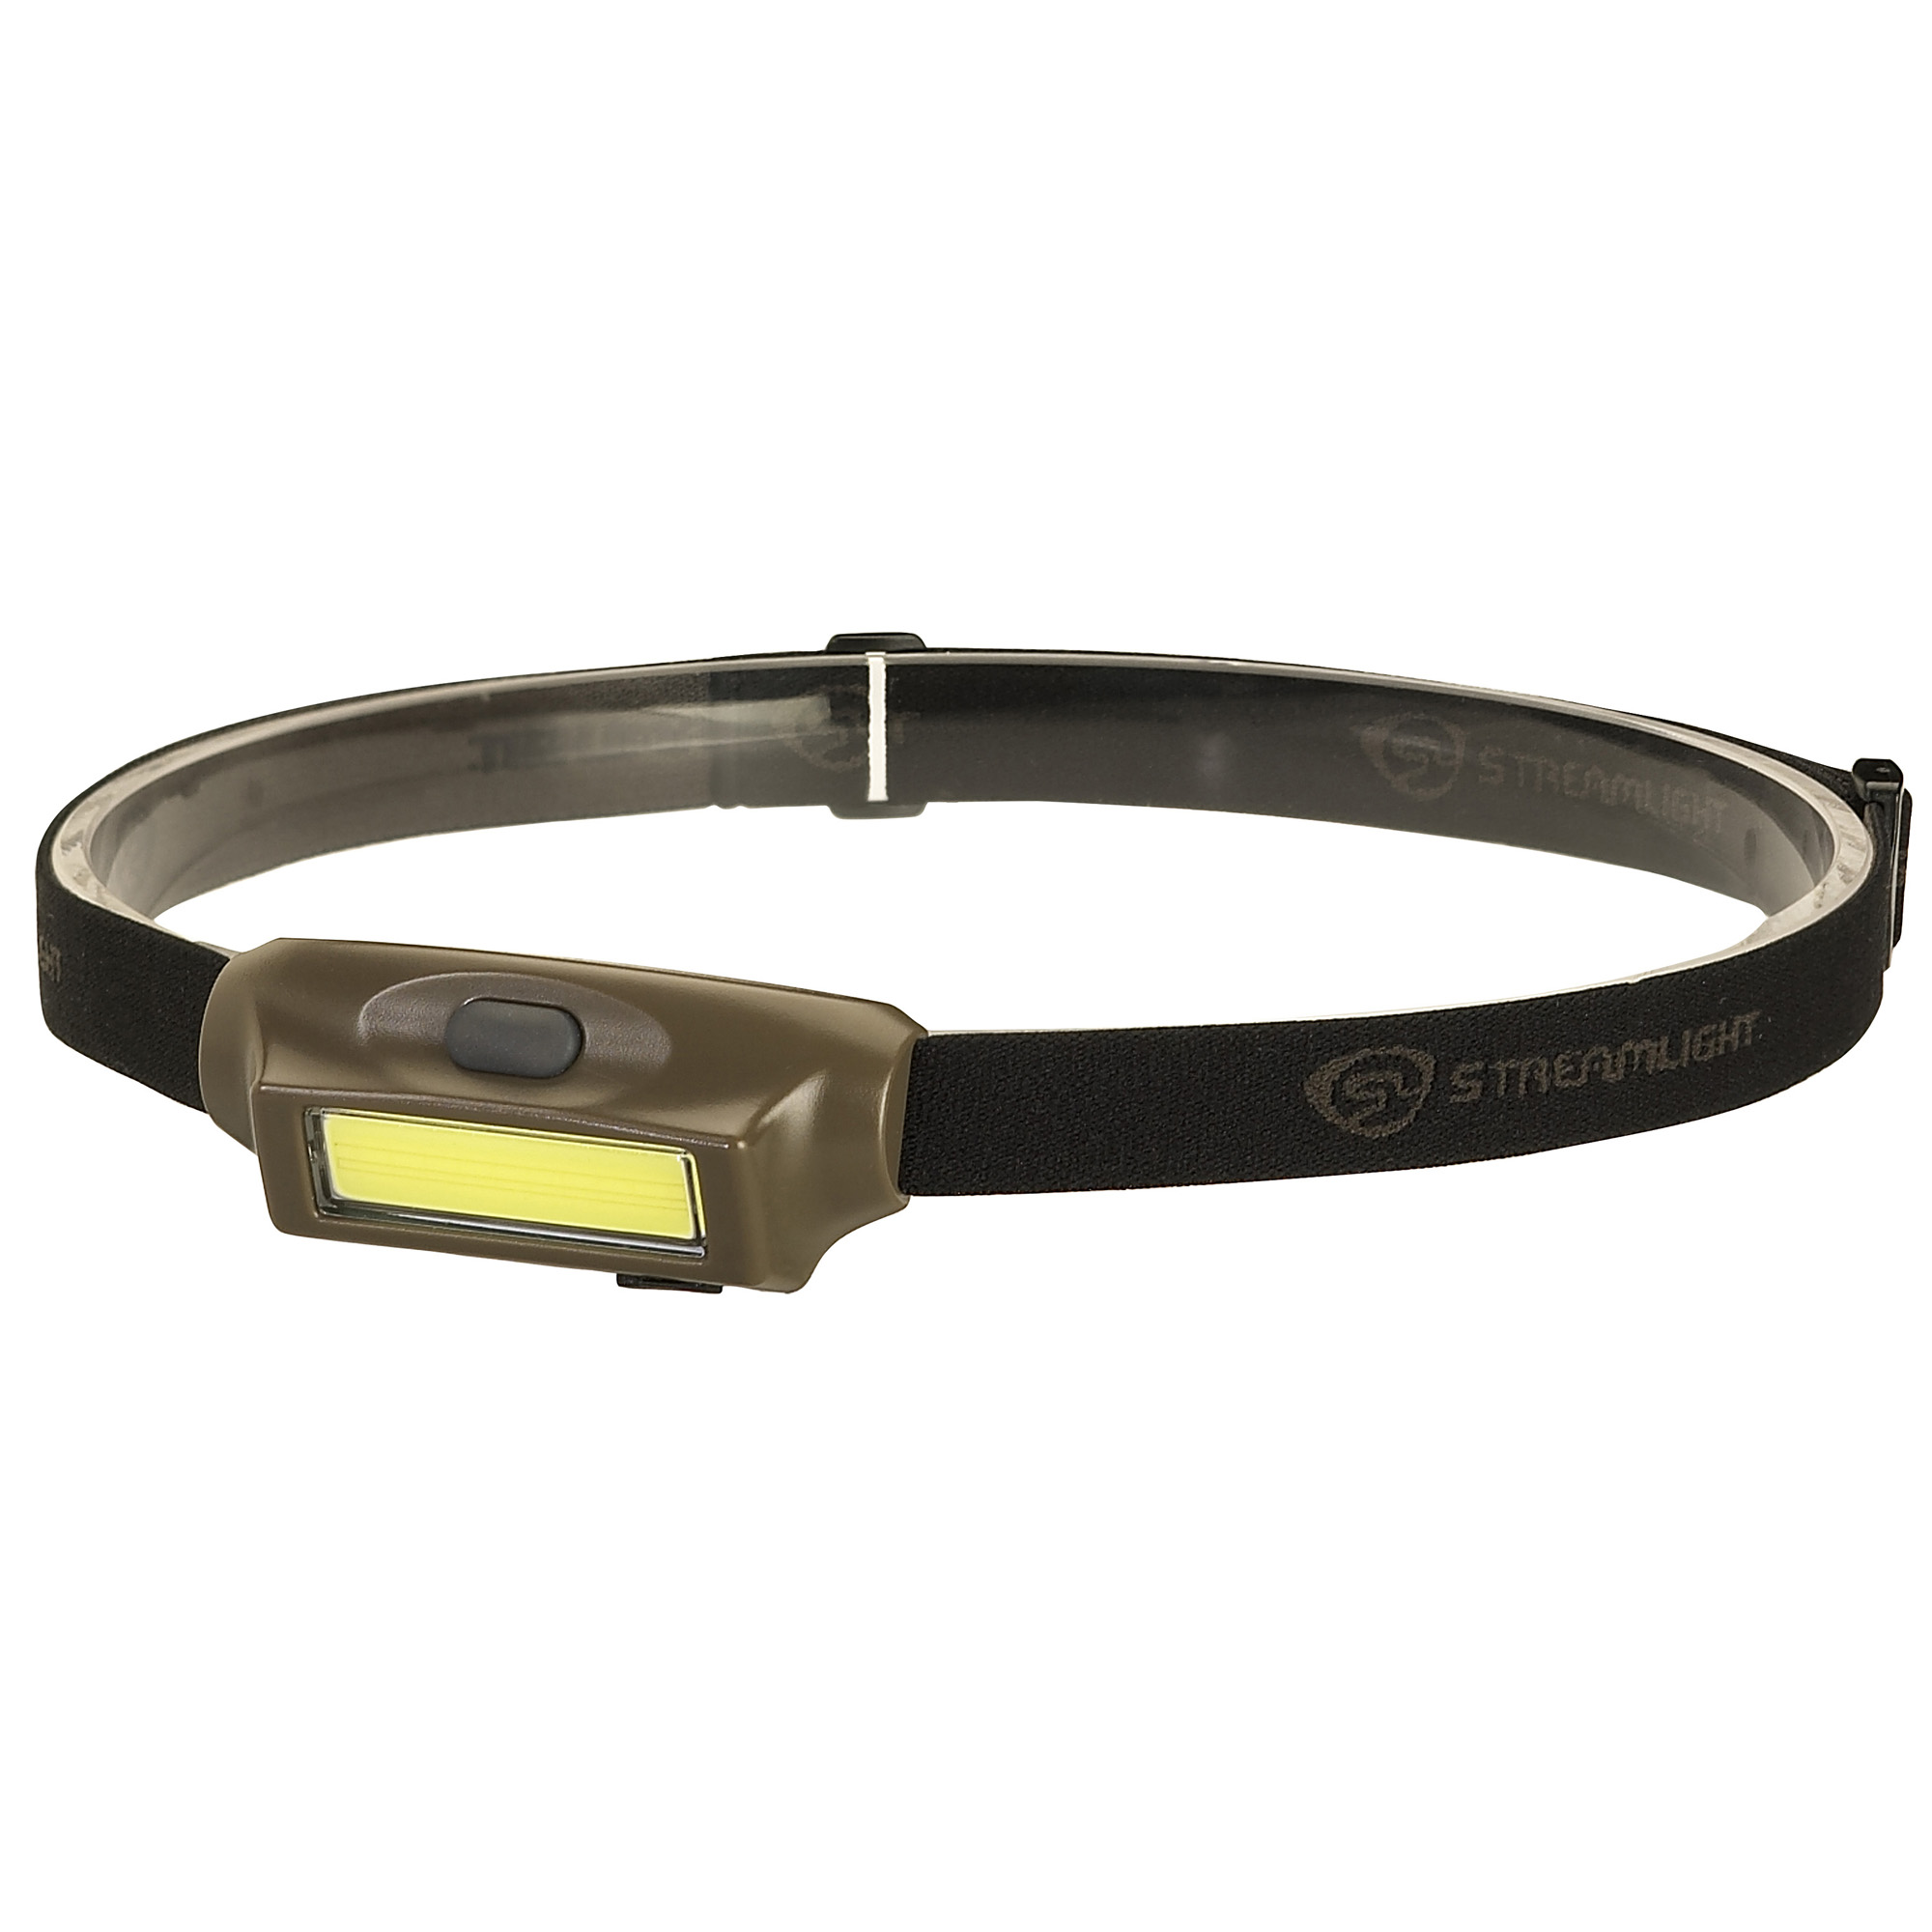 "The Bandit - a lightweight"" low-profile headlamp designed just for you! It is USB rechargeable and provides 180 lumens of widespread white light."